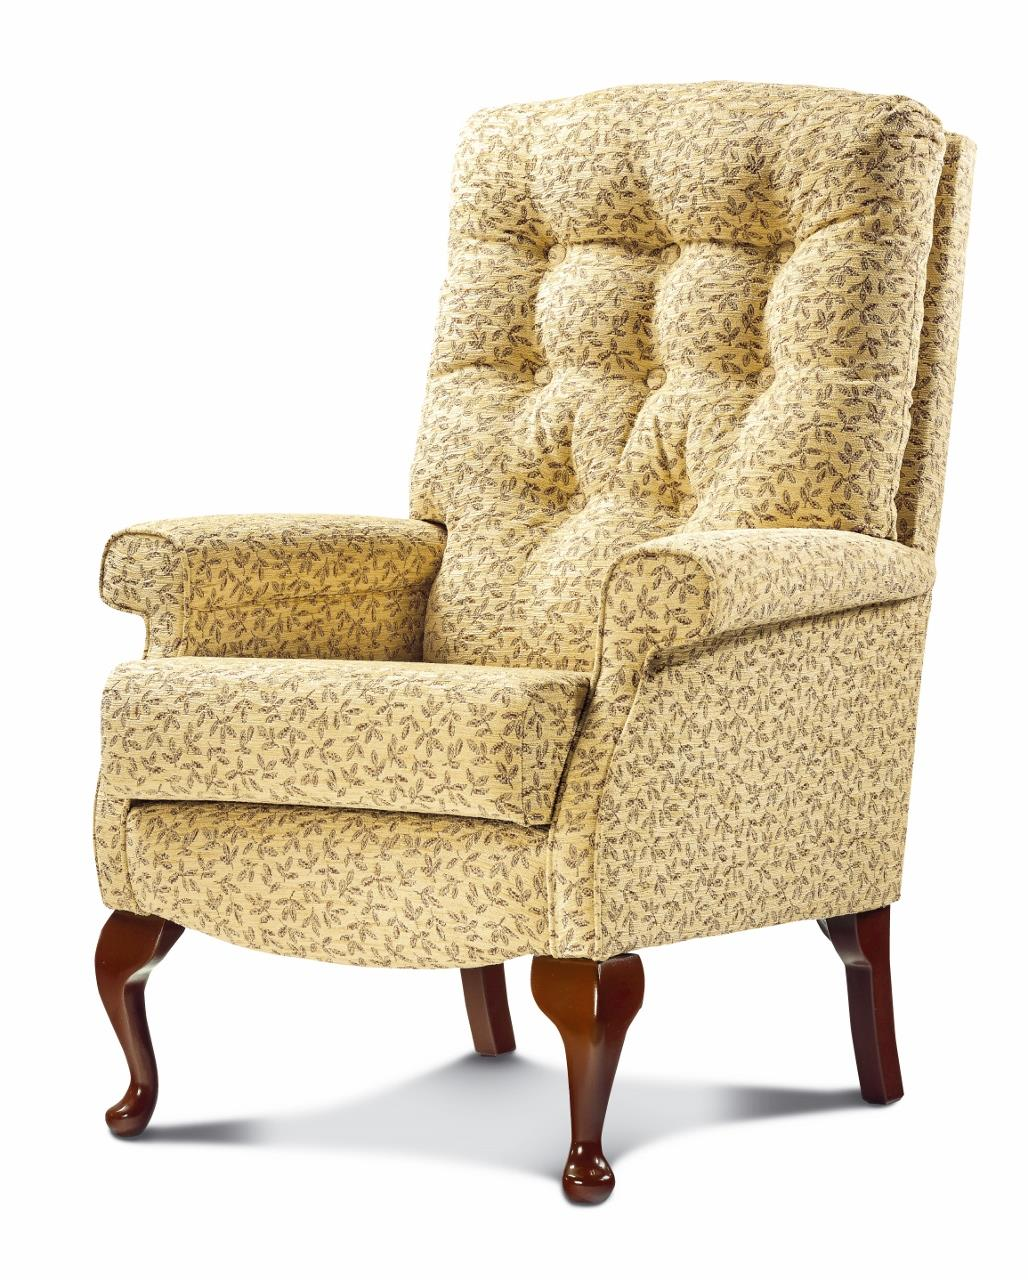 SHILDON - Standard height Seat Chair by Sherborne.